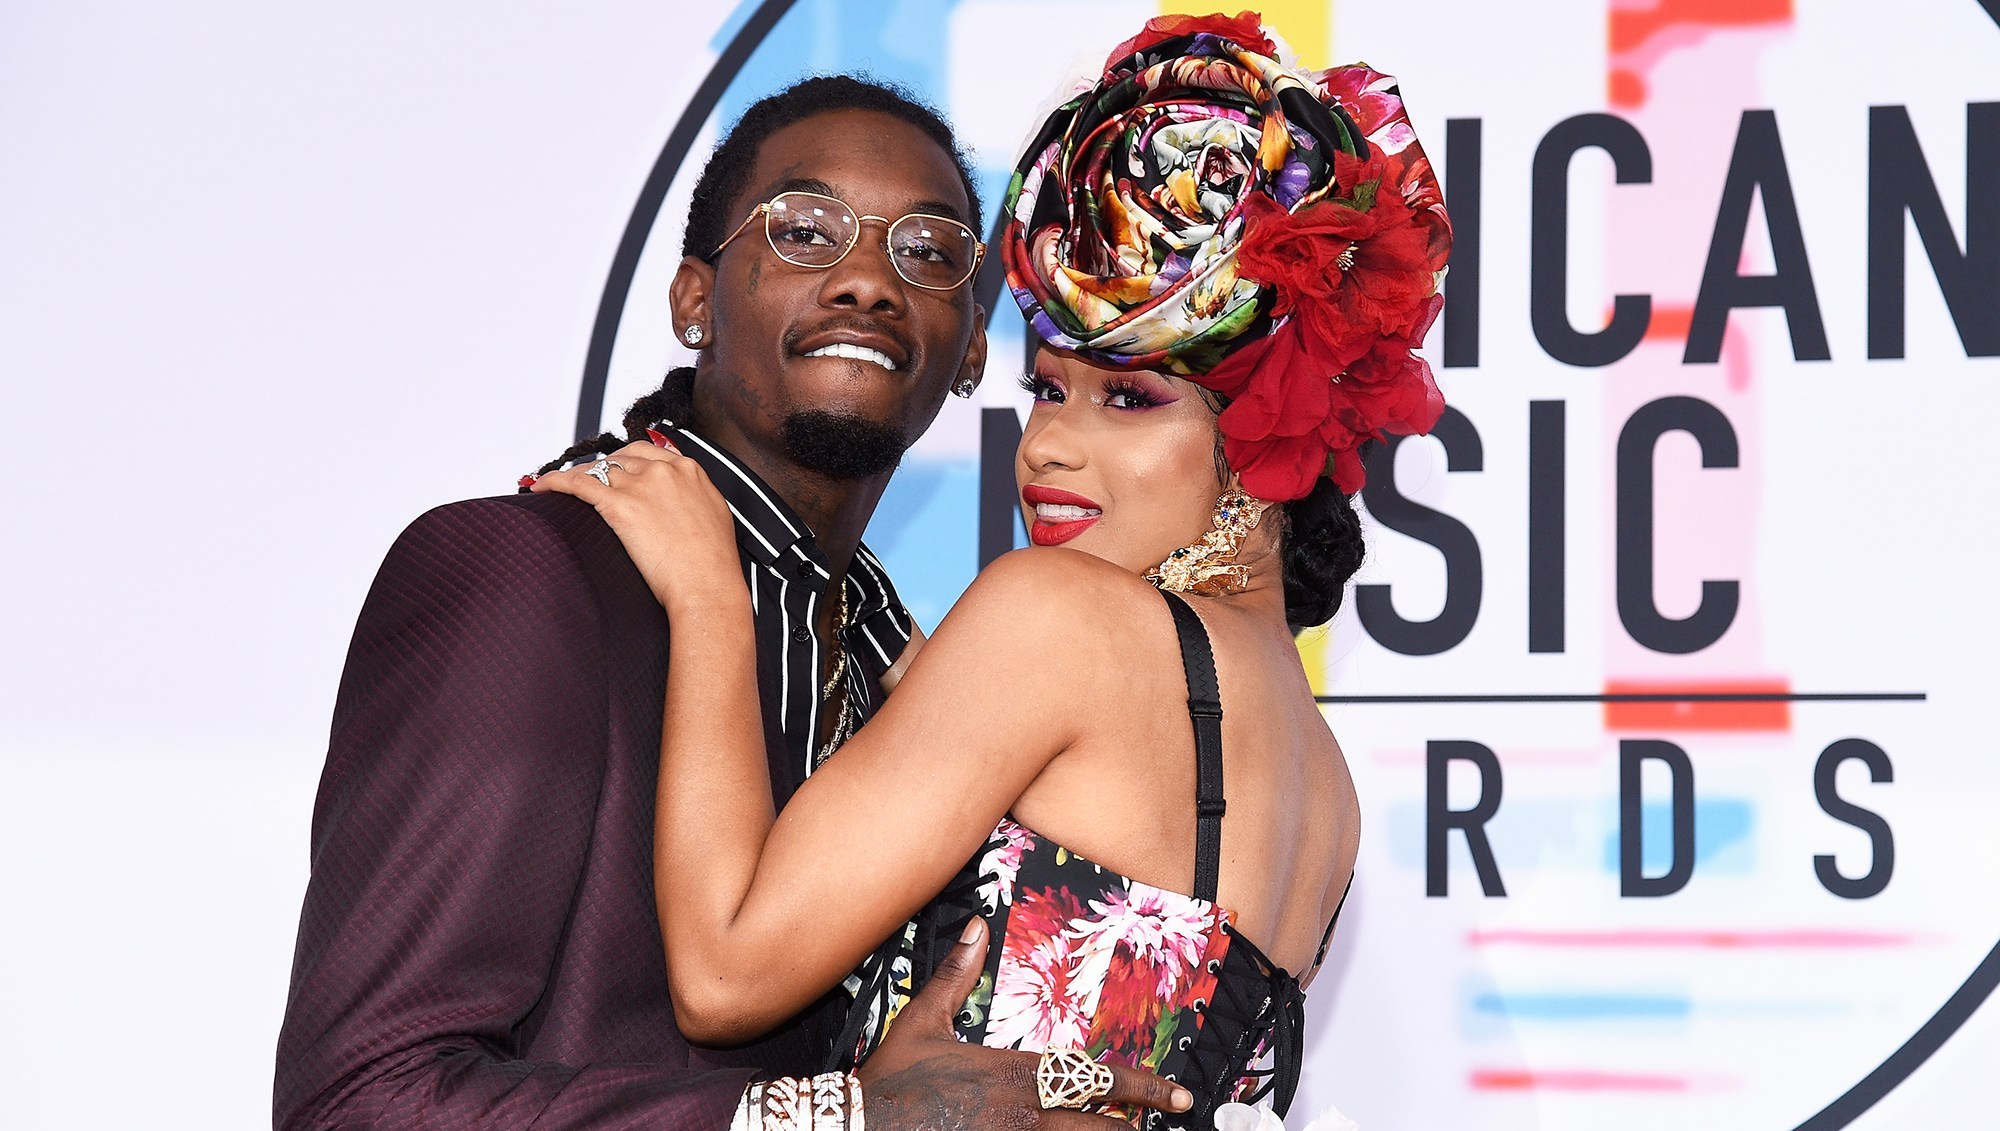 Offset Wants His Estranged Wife Cardi B Back 1 Week After She Announced Their Split: 'It's Really Bothering Him'